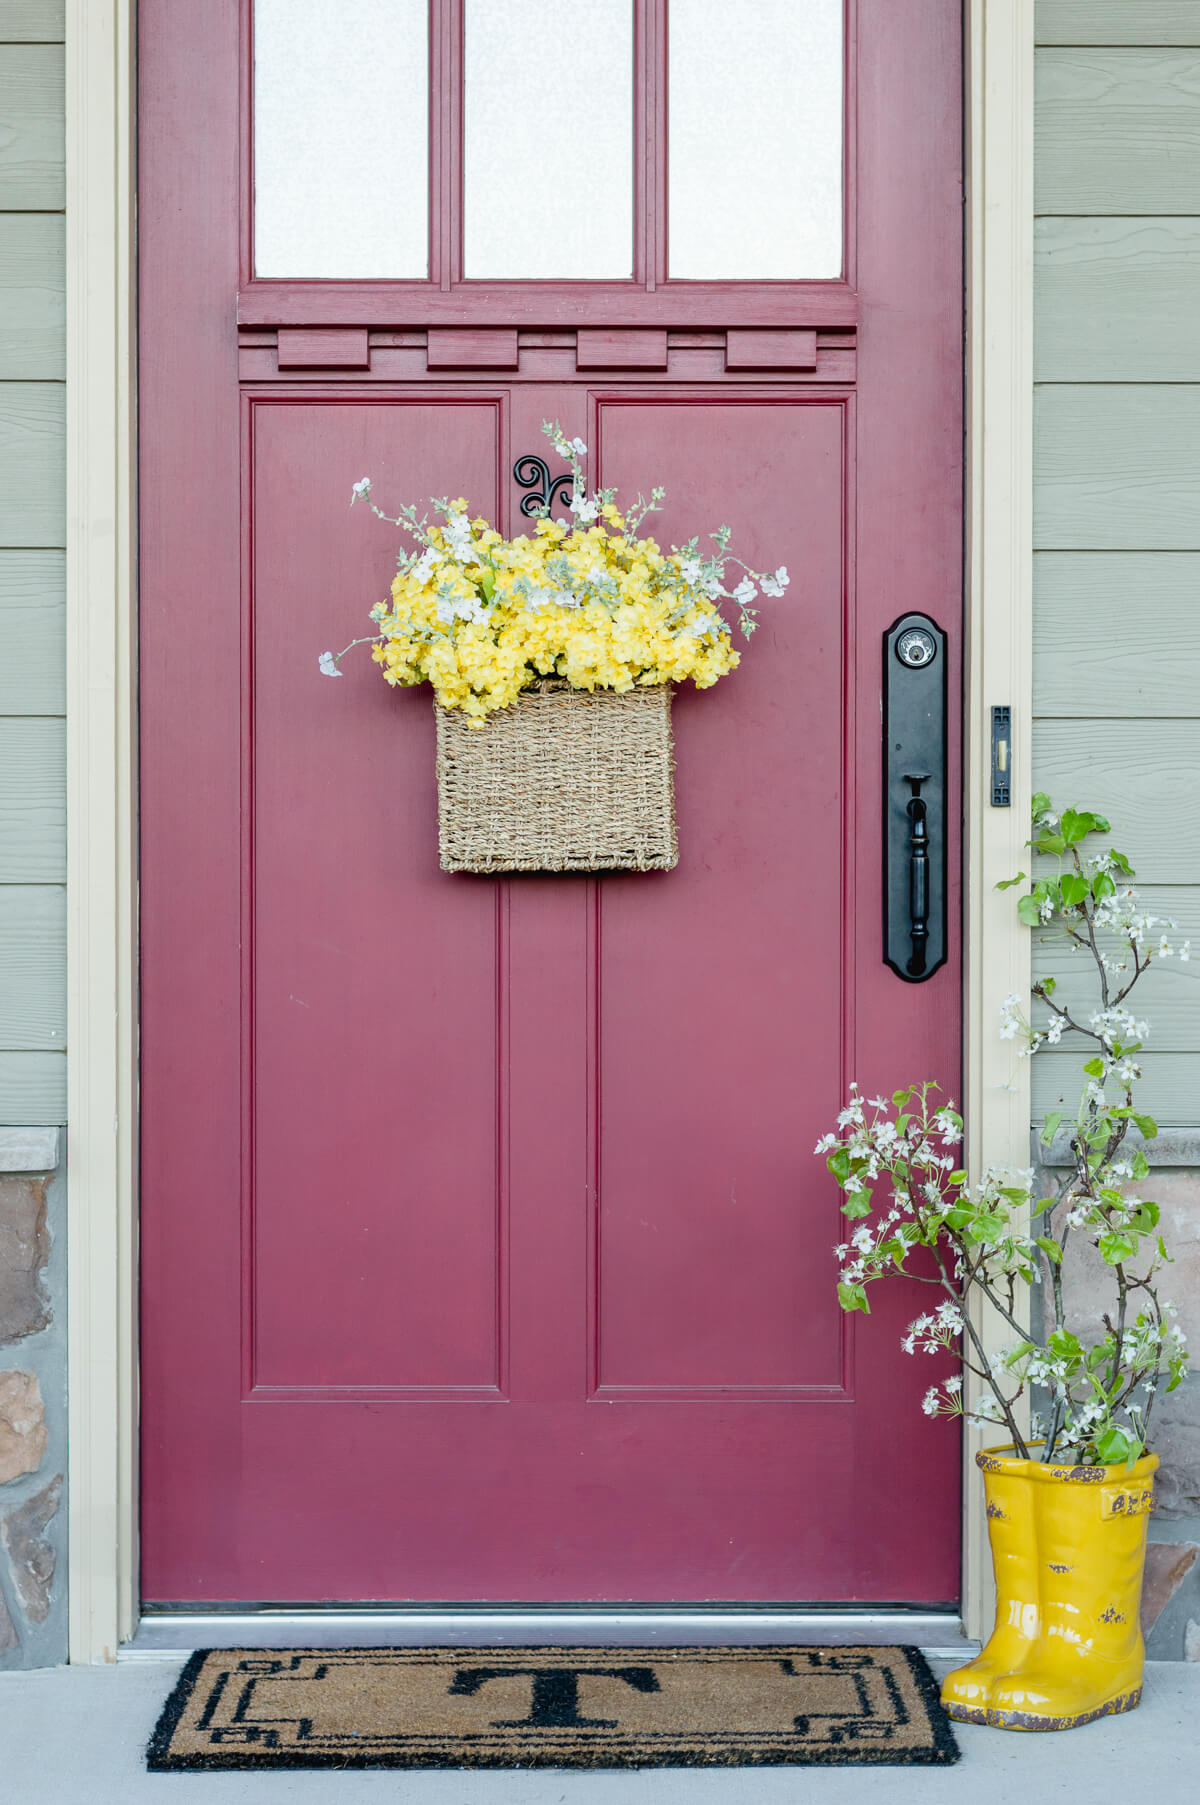 This Spring Flower Door Basket Really Brightens Up My Front Door. Plus  Given The Style Of My Front Door, A Basket Is A Great Alternative To A  Traditional ...